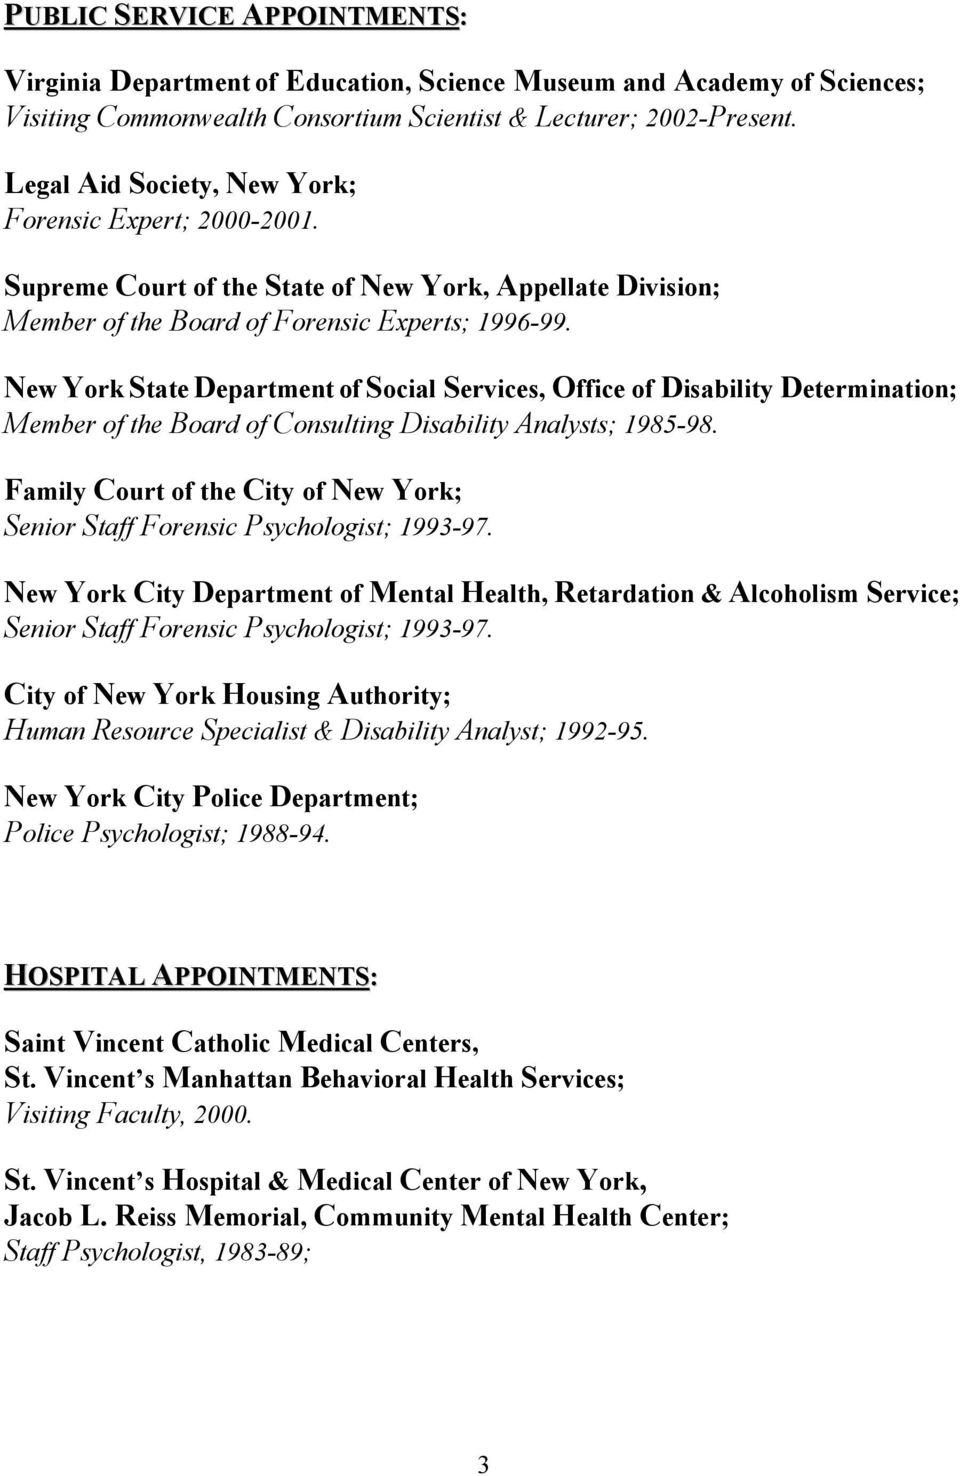 New York State Department of Social Services, Office of Disability Determination; Member of the Board of Consulting Disability Analysts; 1985-98.